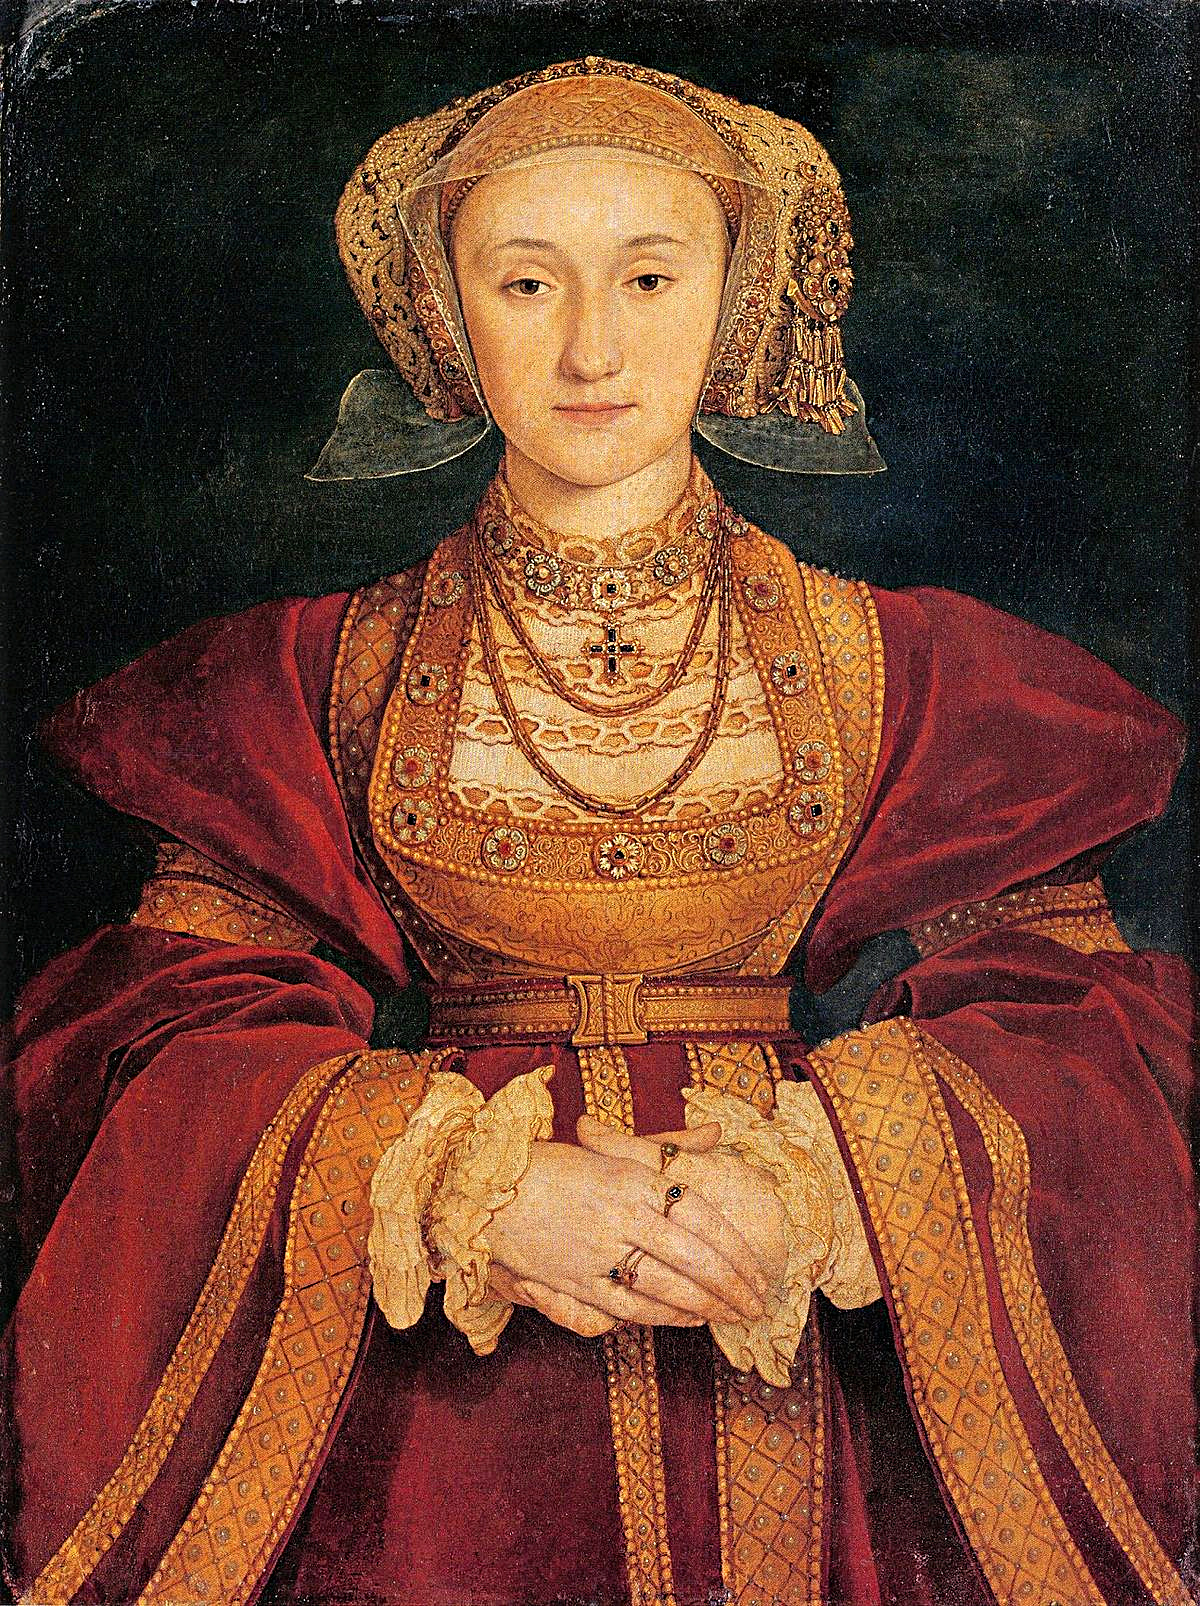 Anne of Cleves was born at the City Palace of Dusseldorf